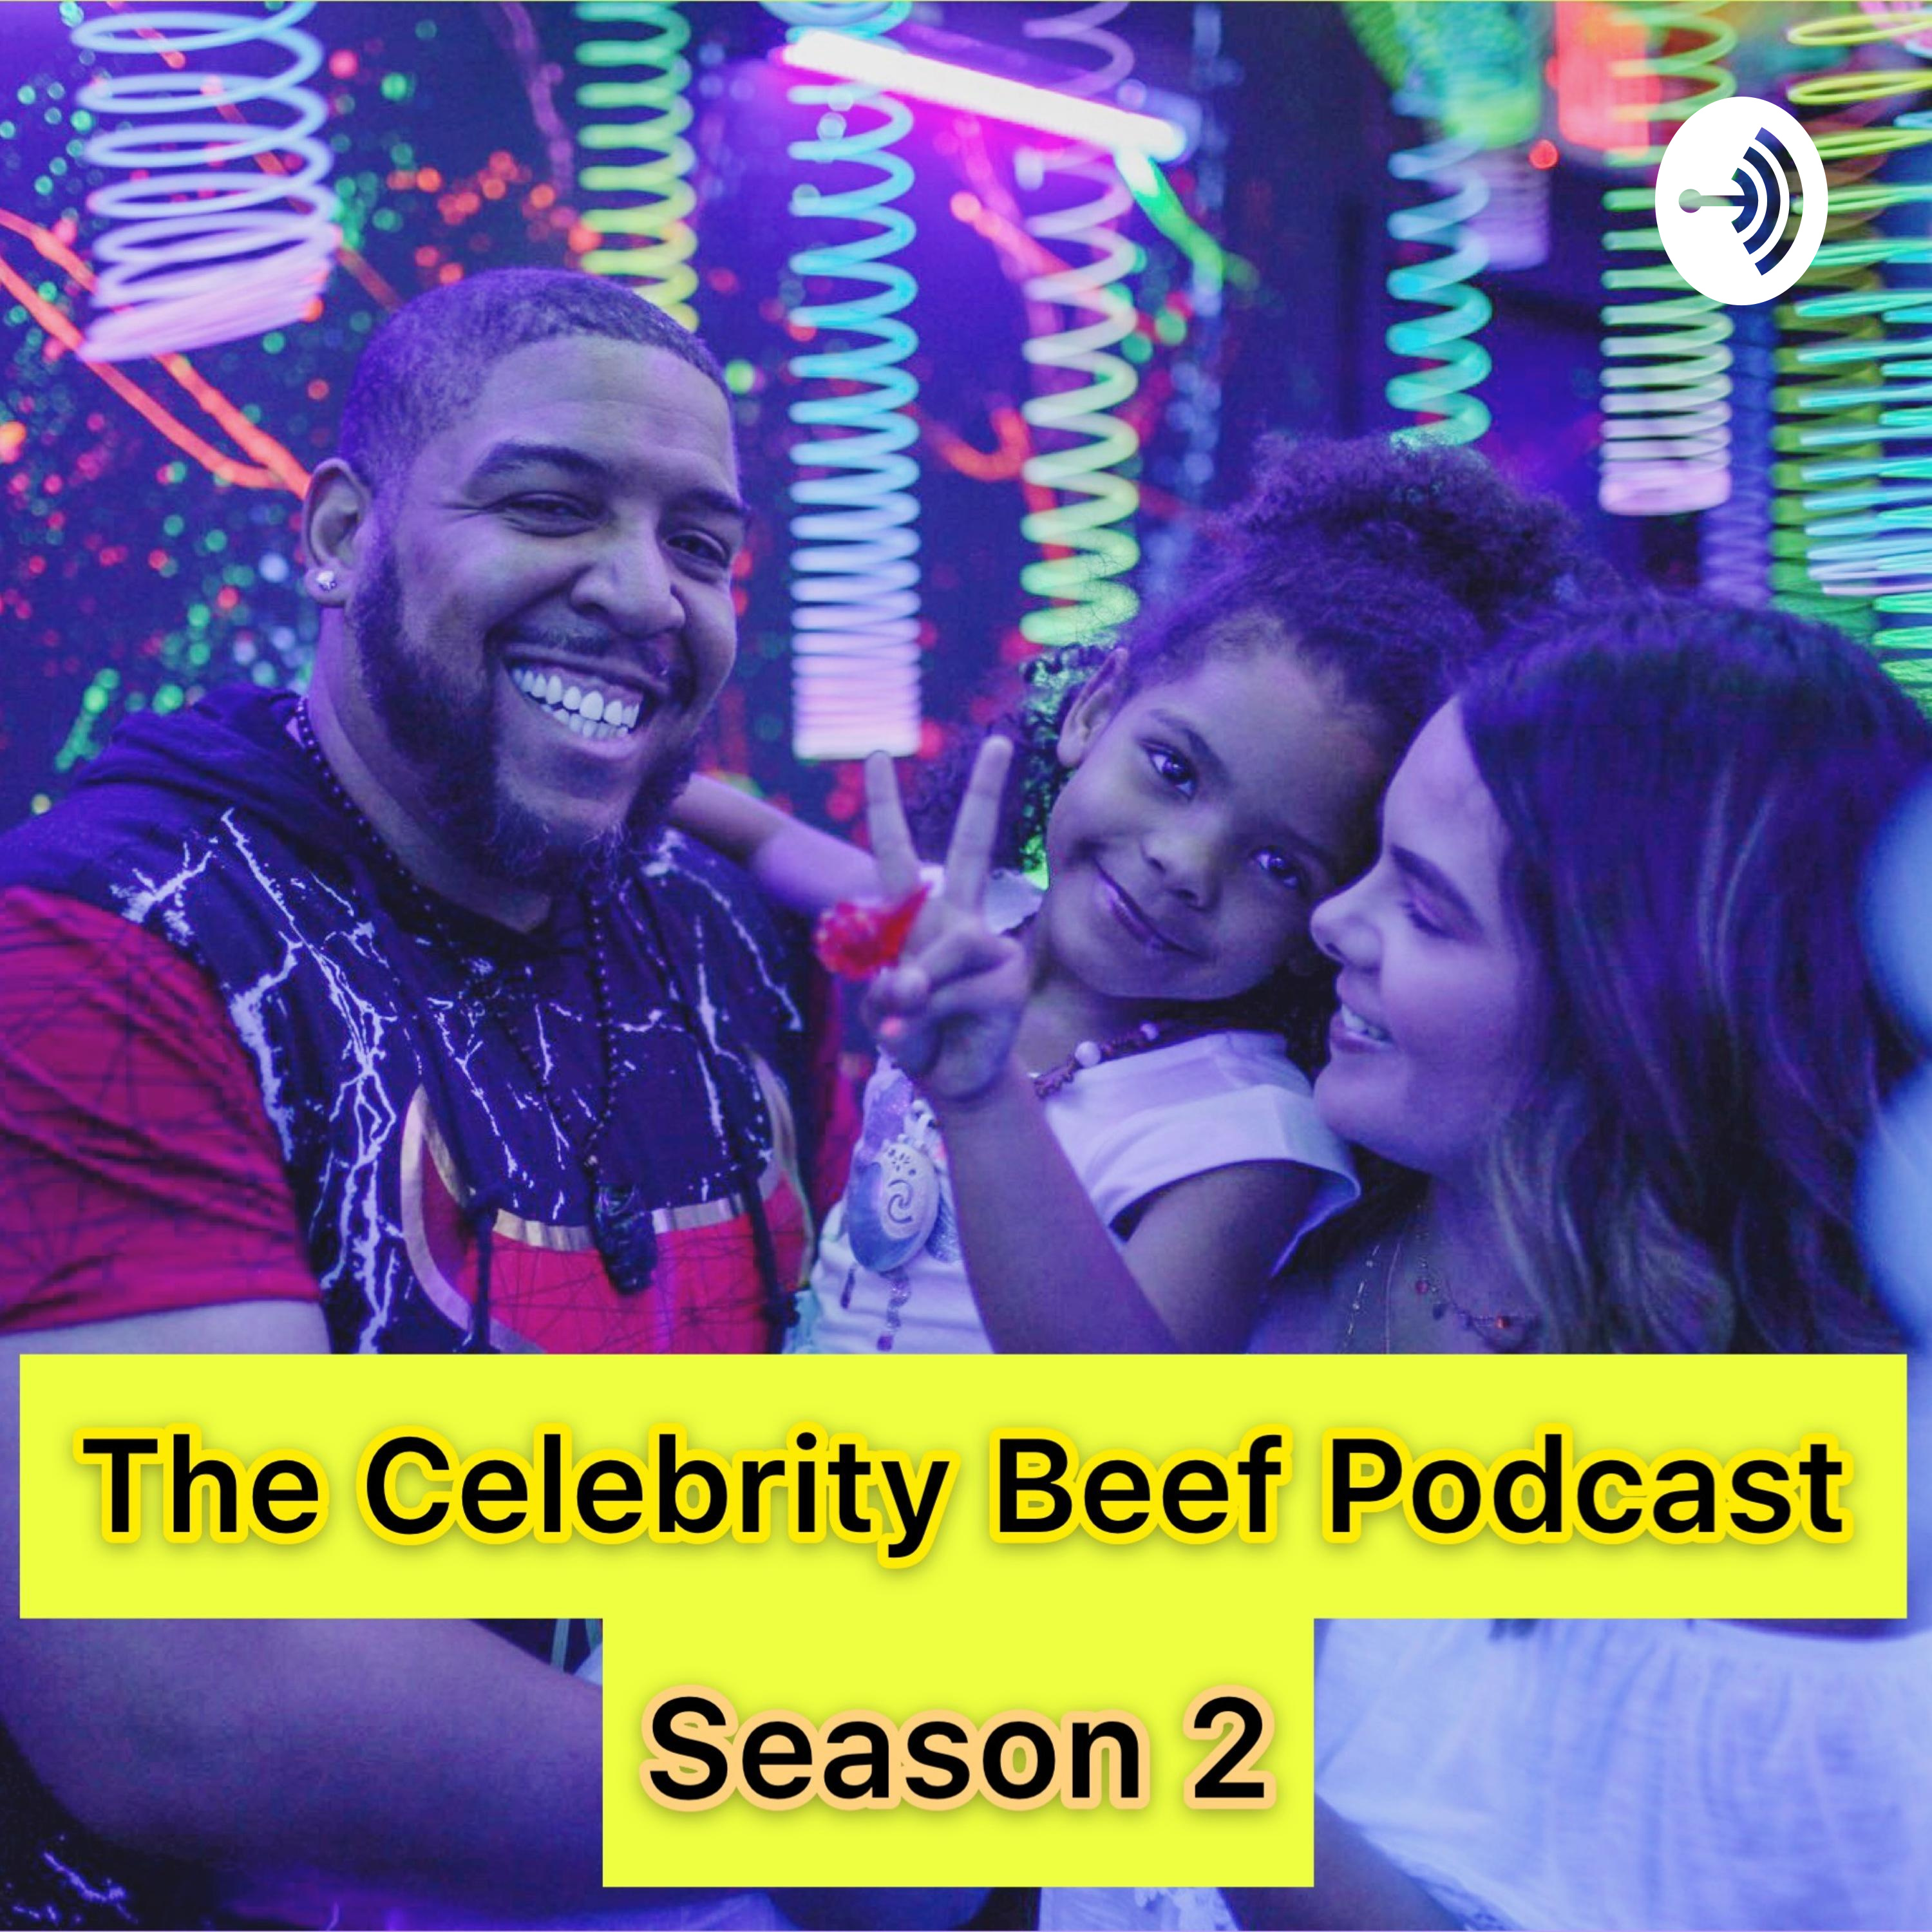 The Celebrity Beef Podcast